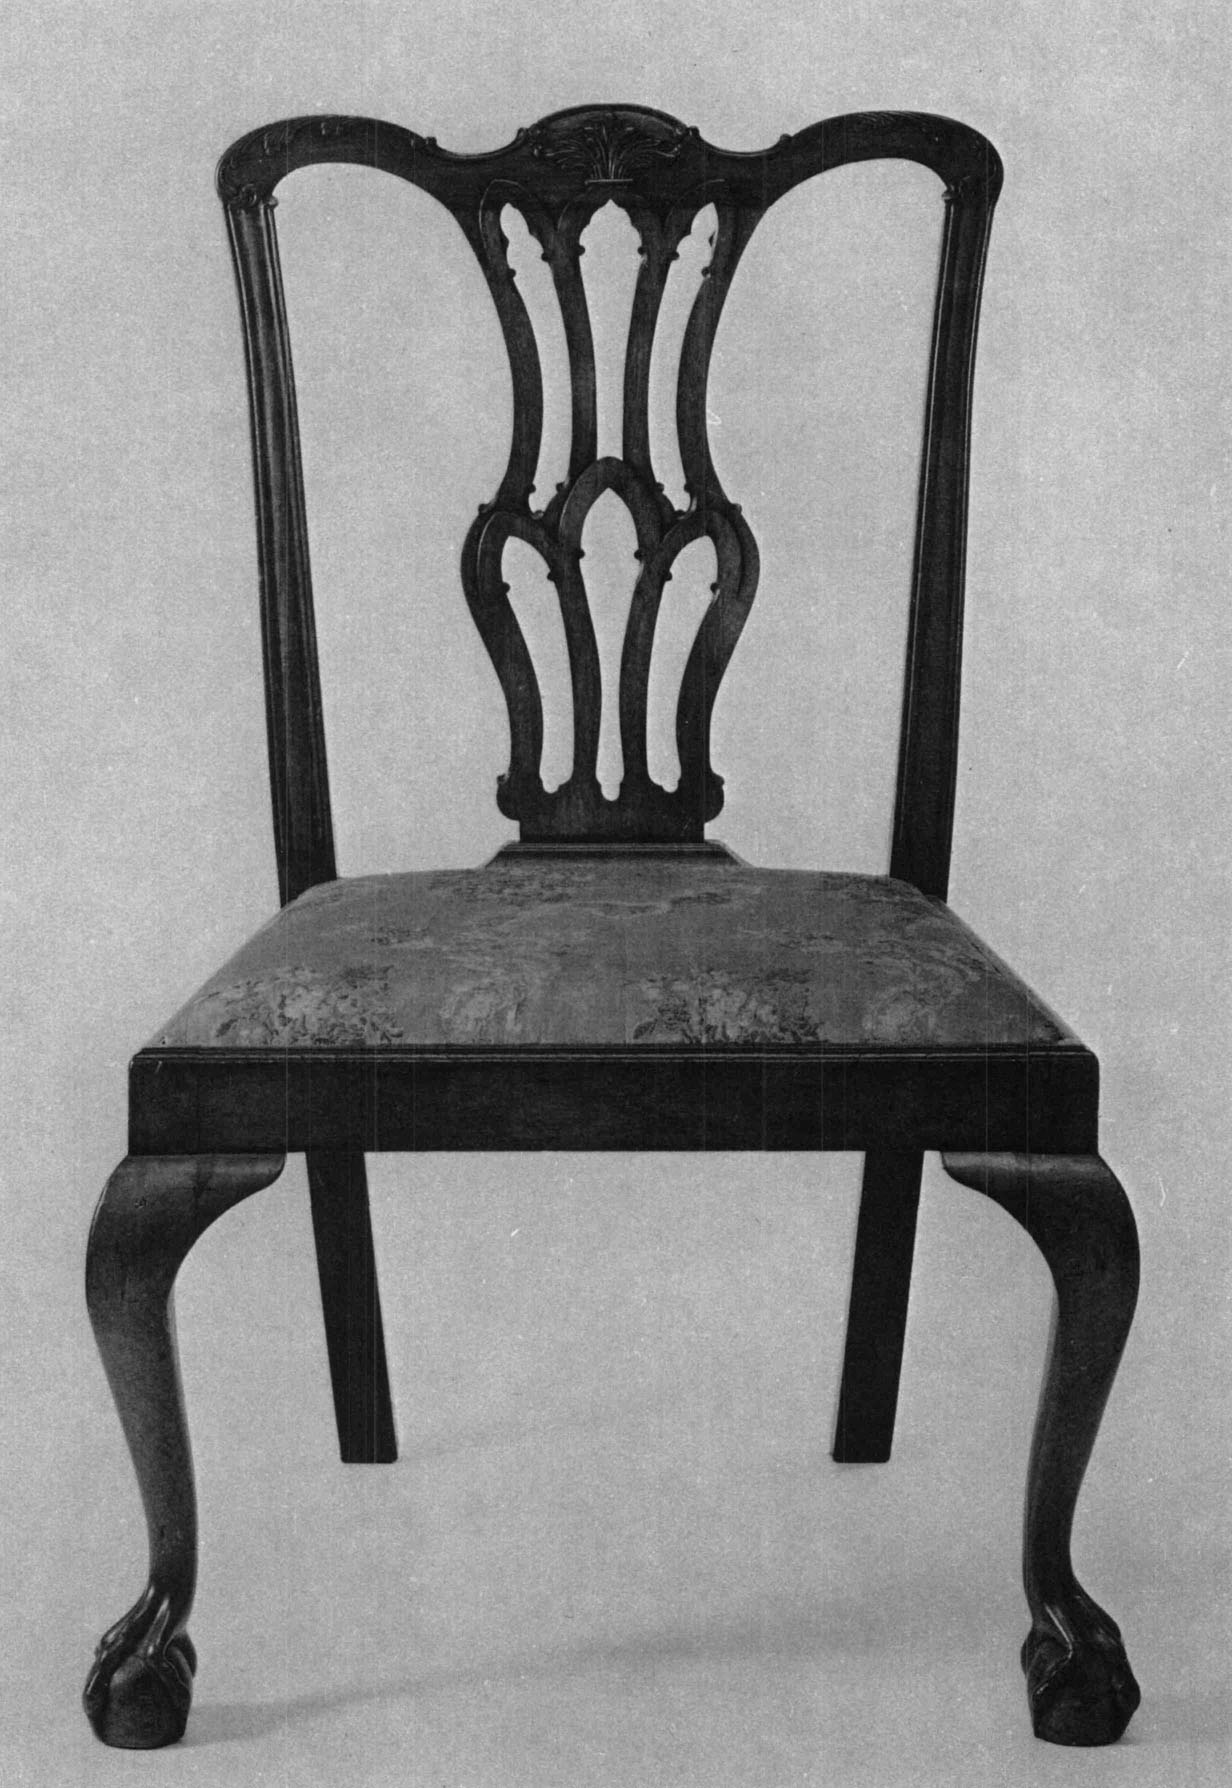 This israel sack american federal mahogany antique lolling arm chair - Side Chair Boston C 1760 1780 Mahogany Maple And White Pine H 38 Inches W 2215 16 Inches D 19 Inches Museum Of Fine Arts Boston